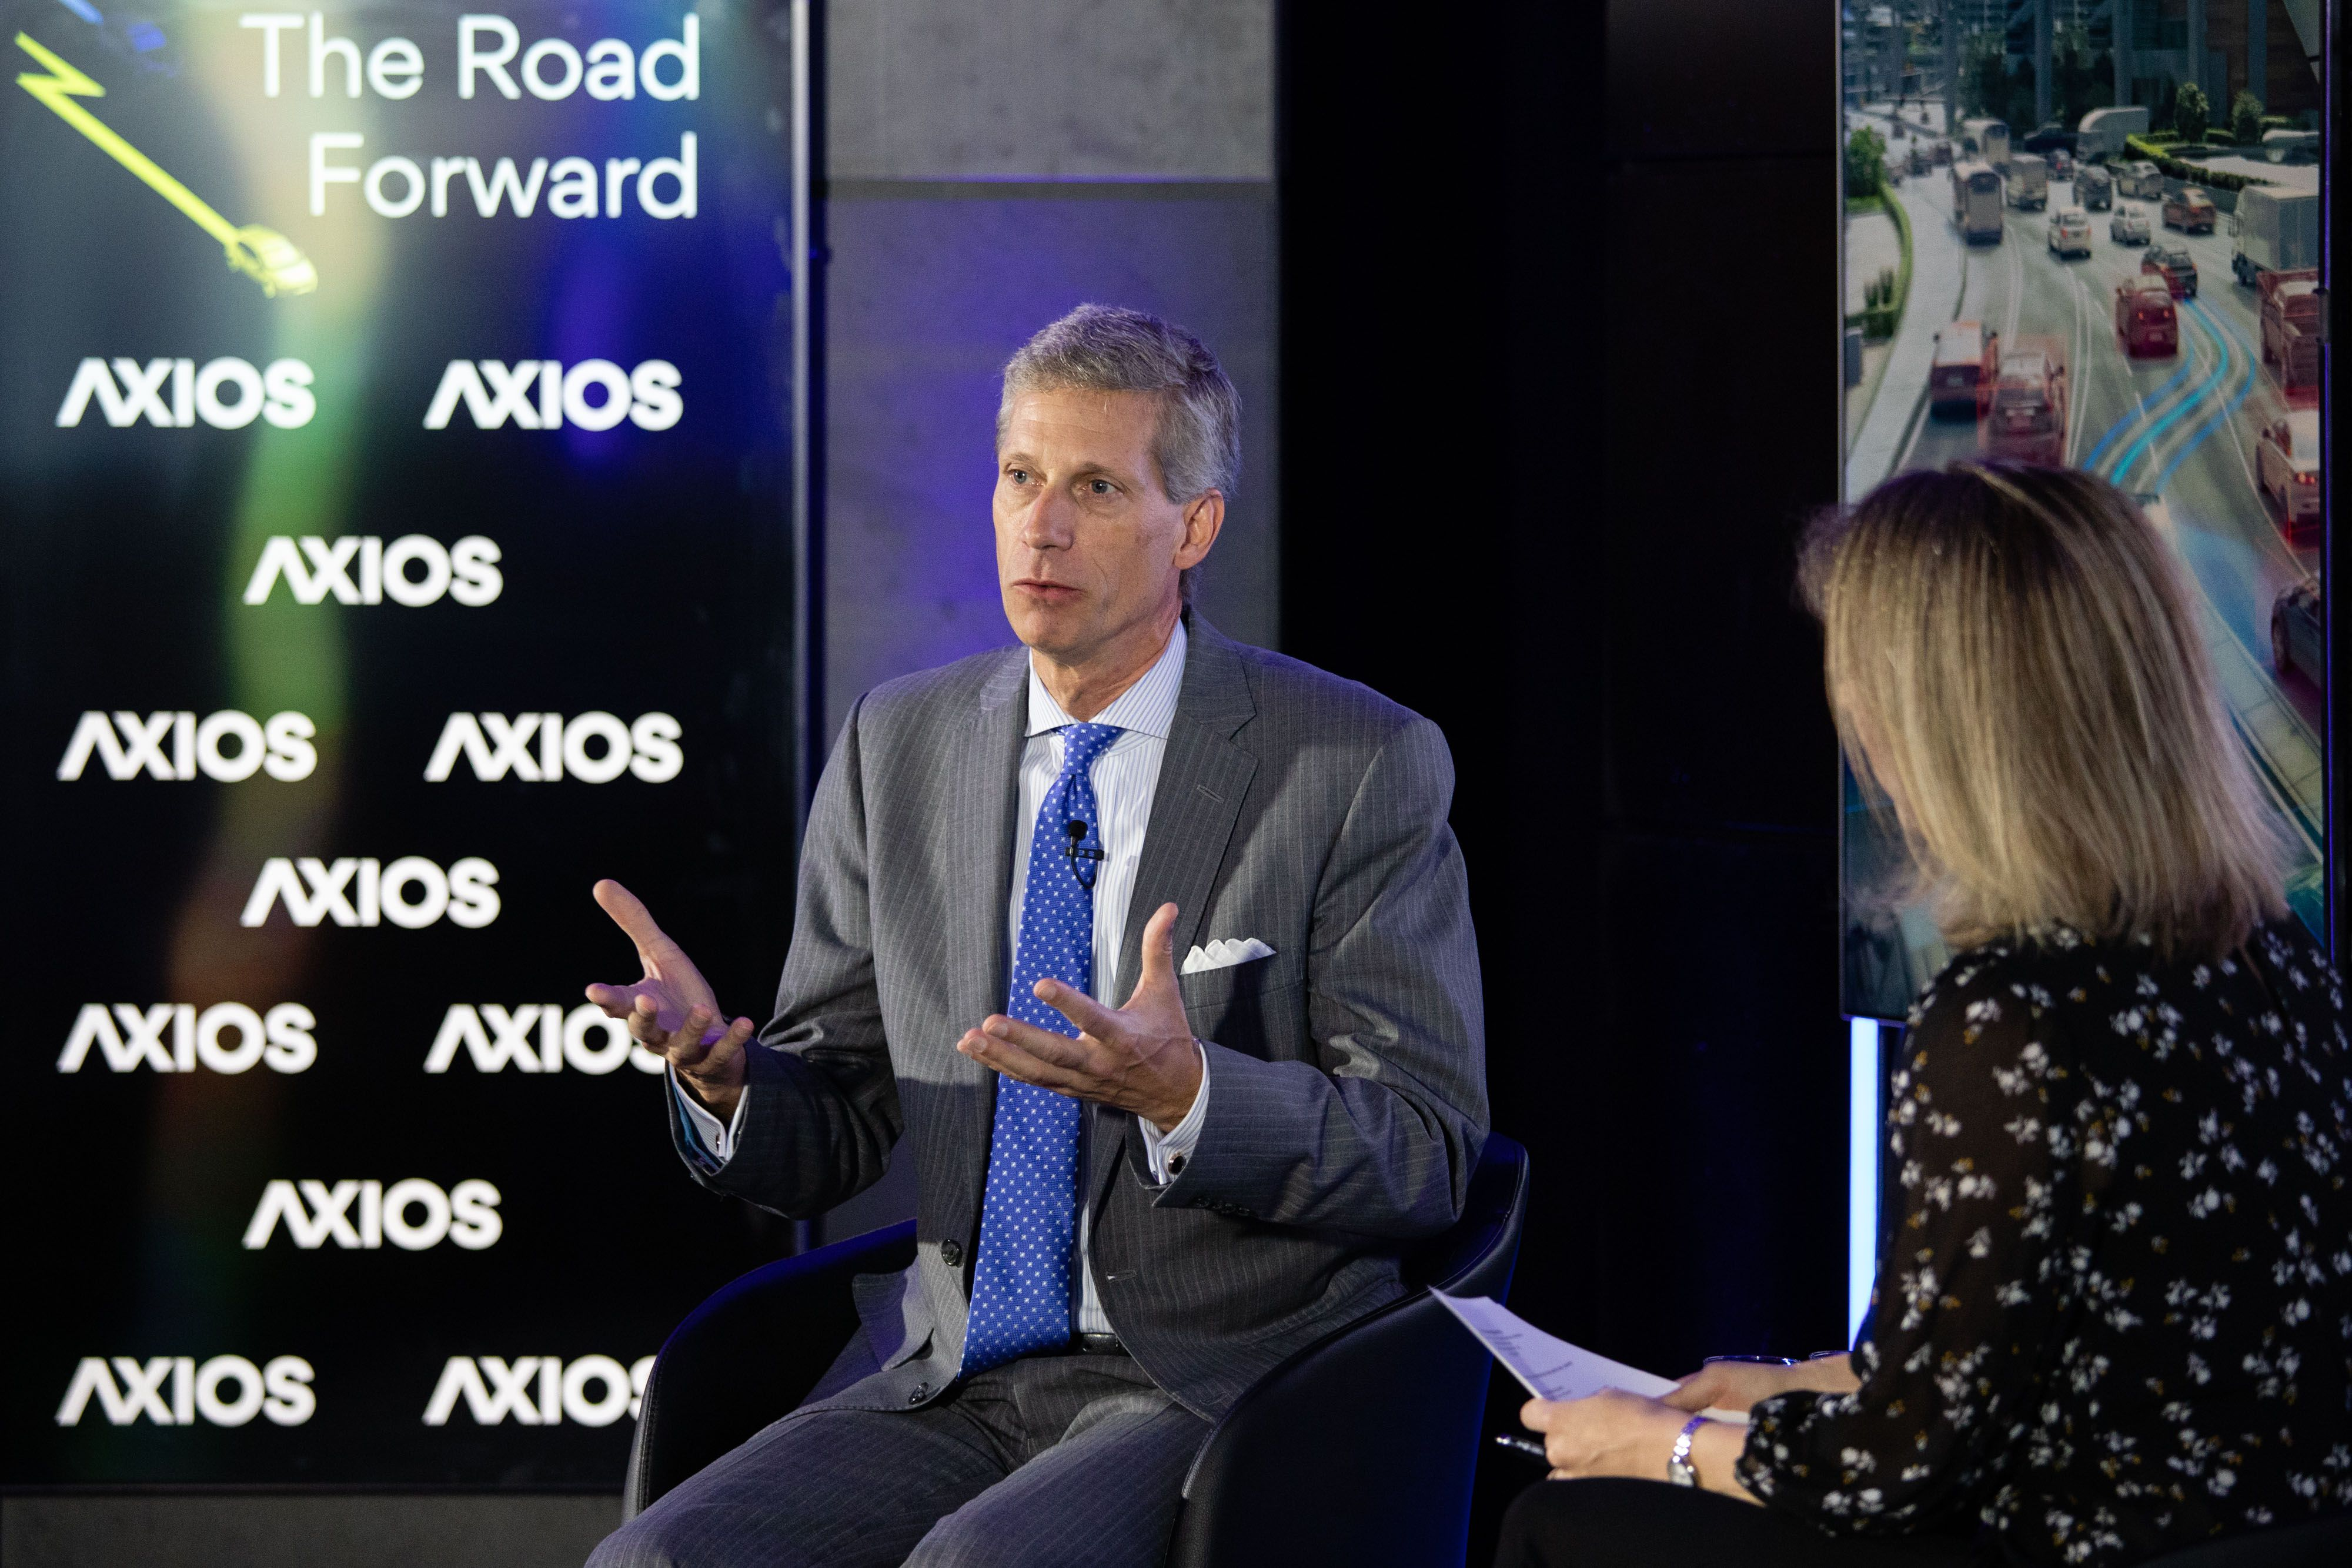 SAE International CEO David Schutt on the Axios stage